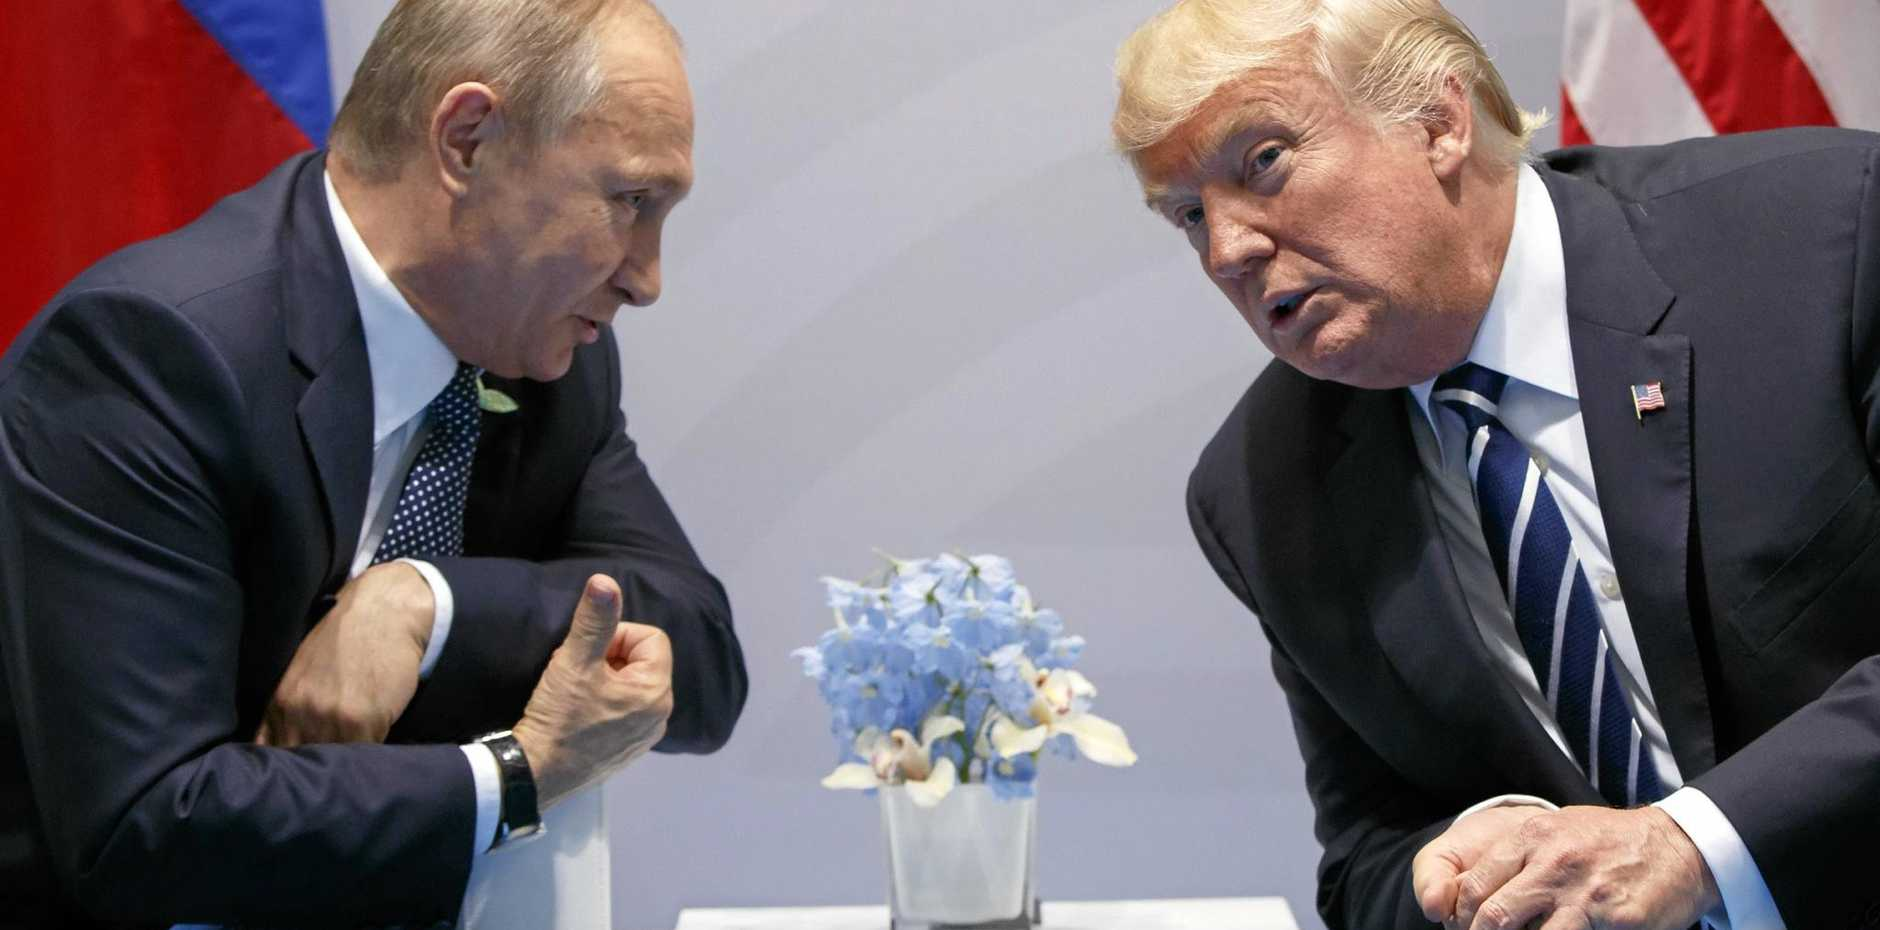 Russian President Vladimir Putin and US President Donald Trump meet at the G20 Summit in Hamburg.